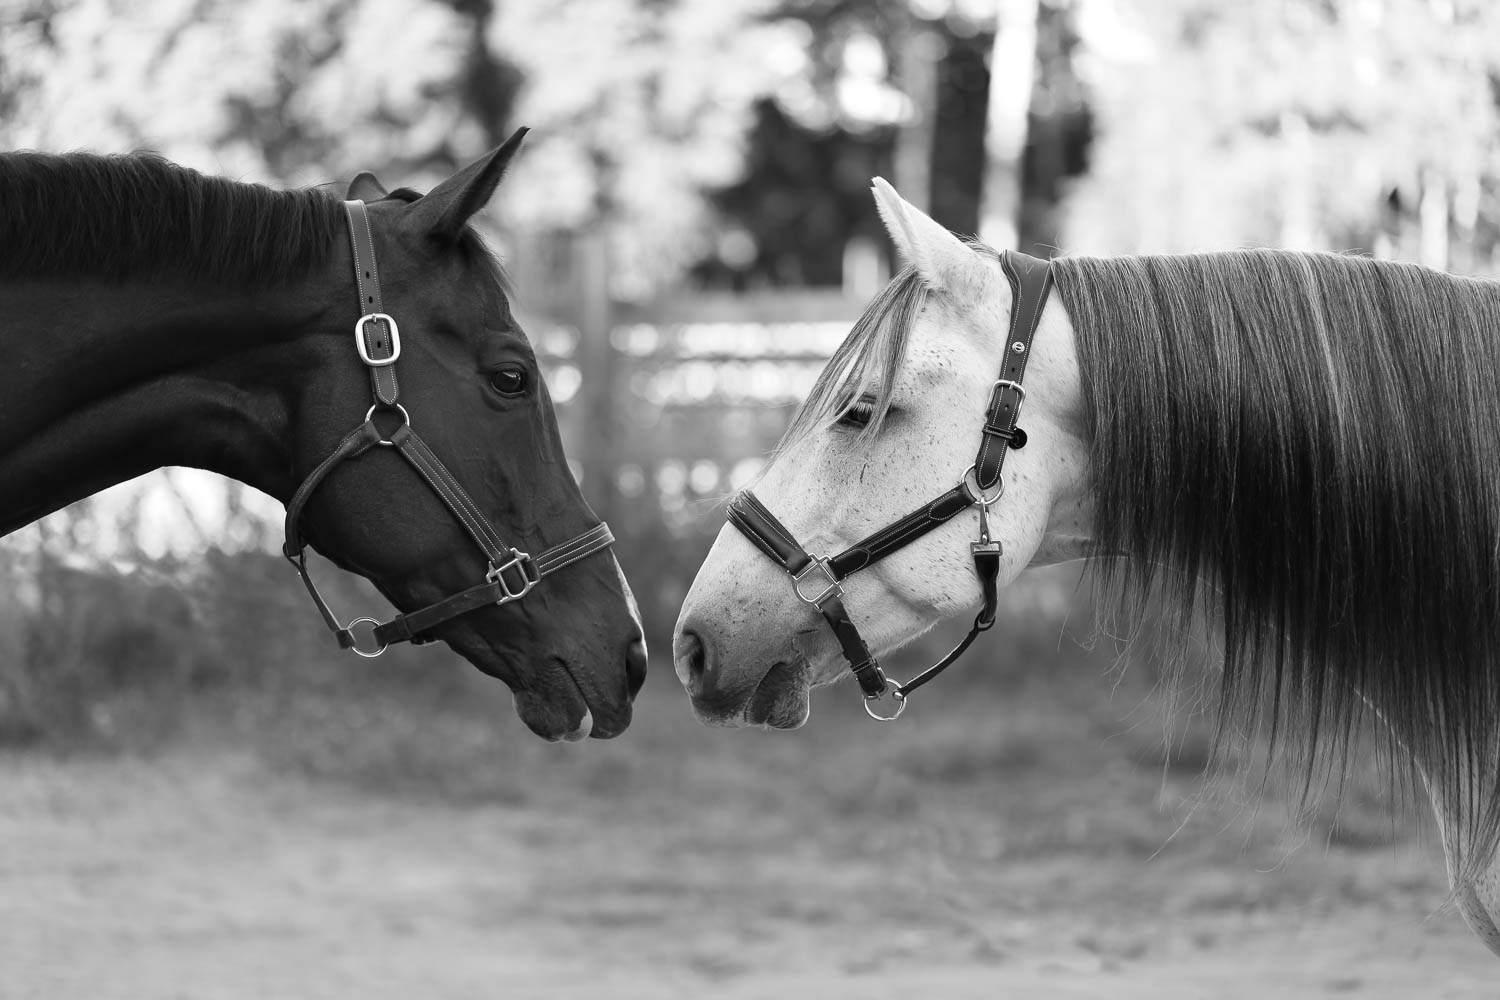 ottb and azteca horses at double H stables in stillwater